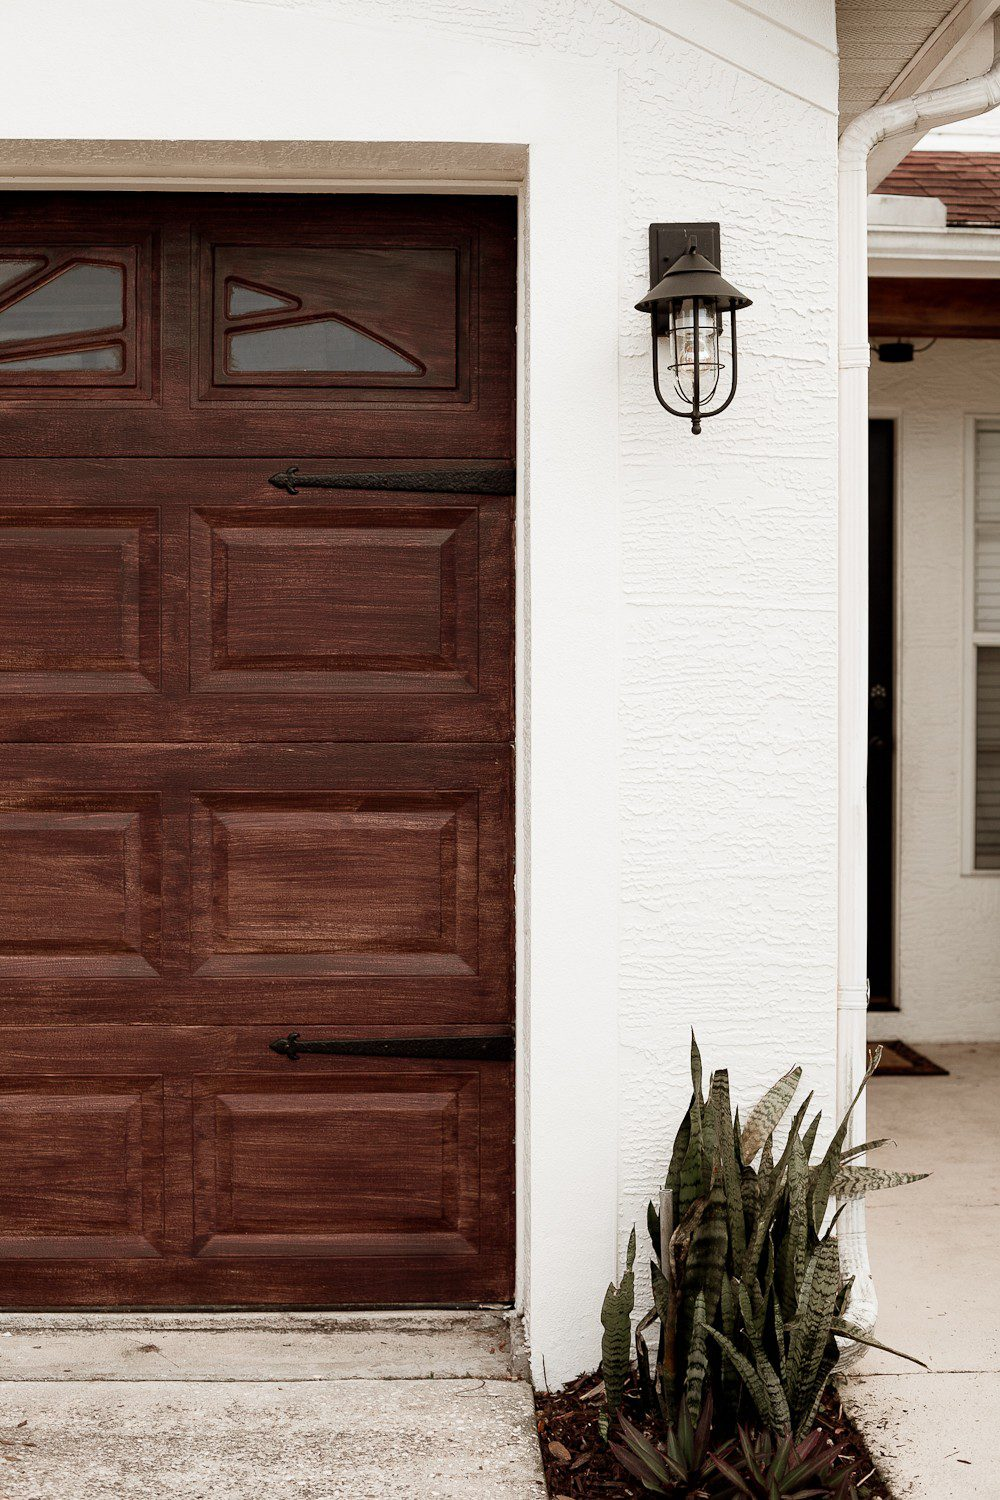 Transform your garage door to a gorgeous faux wood door with this easy gel stain DIY garage door makeover by popular diy blogger Tabitha Blue of Fresh Mommy Blog: image of white house with a faux wood garage door.